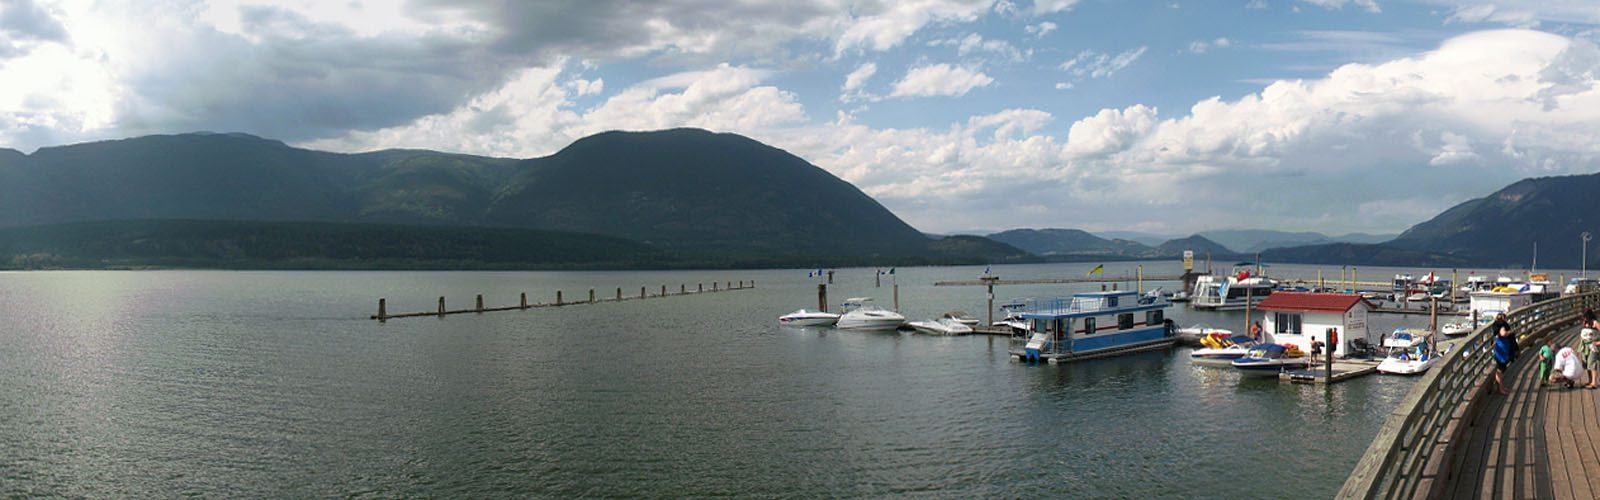 Salmon Arm View of twon Wharf and lake -sliver (Mark Ruthenberg)